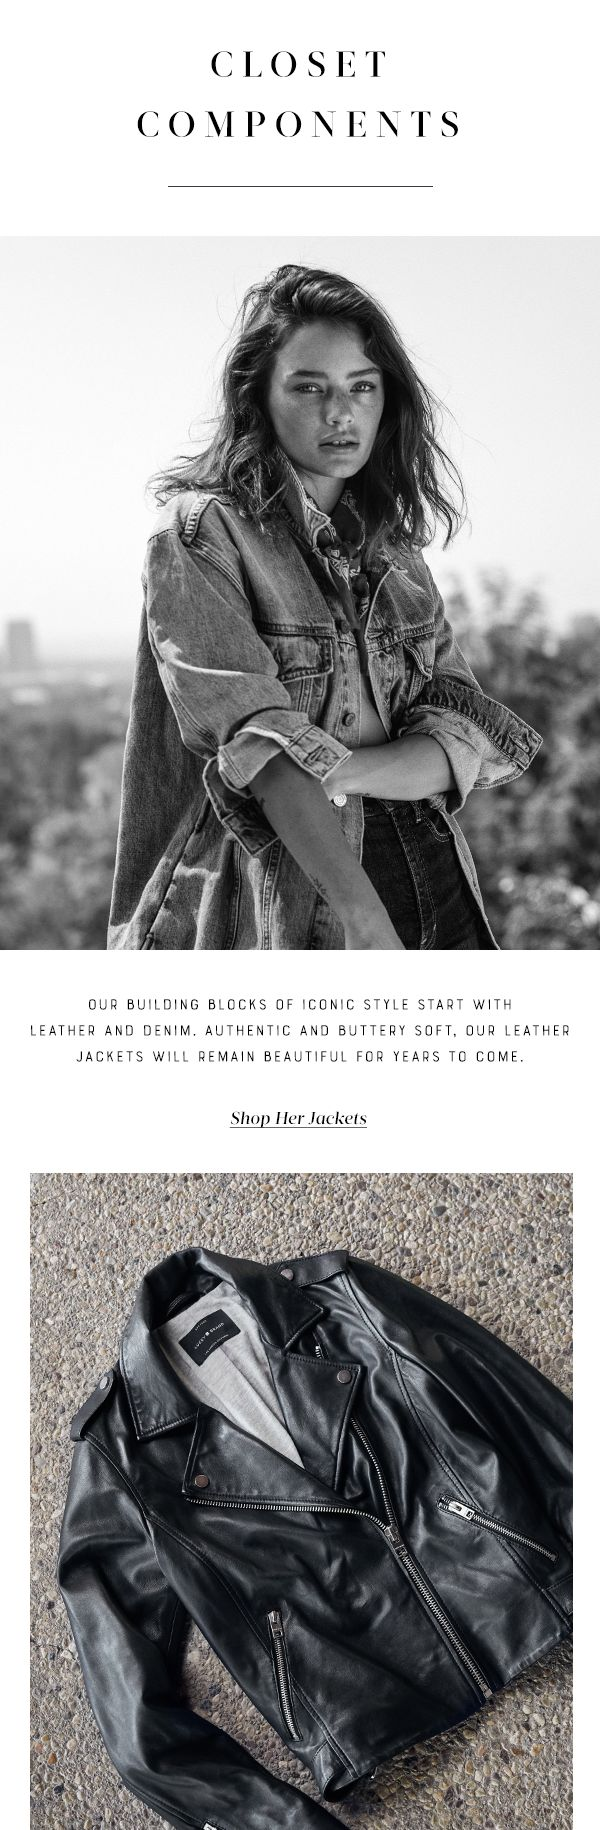 Shop Her Jackets